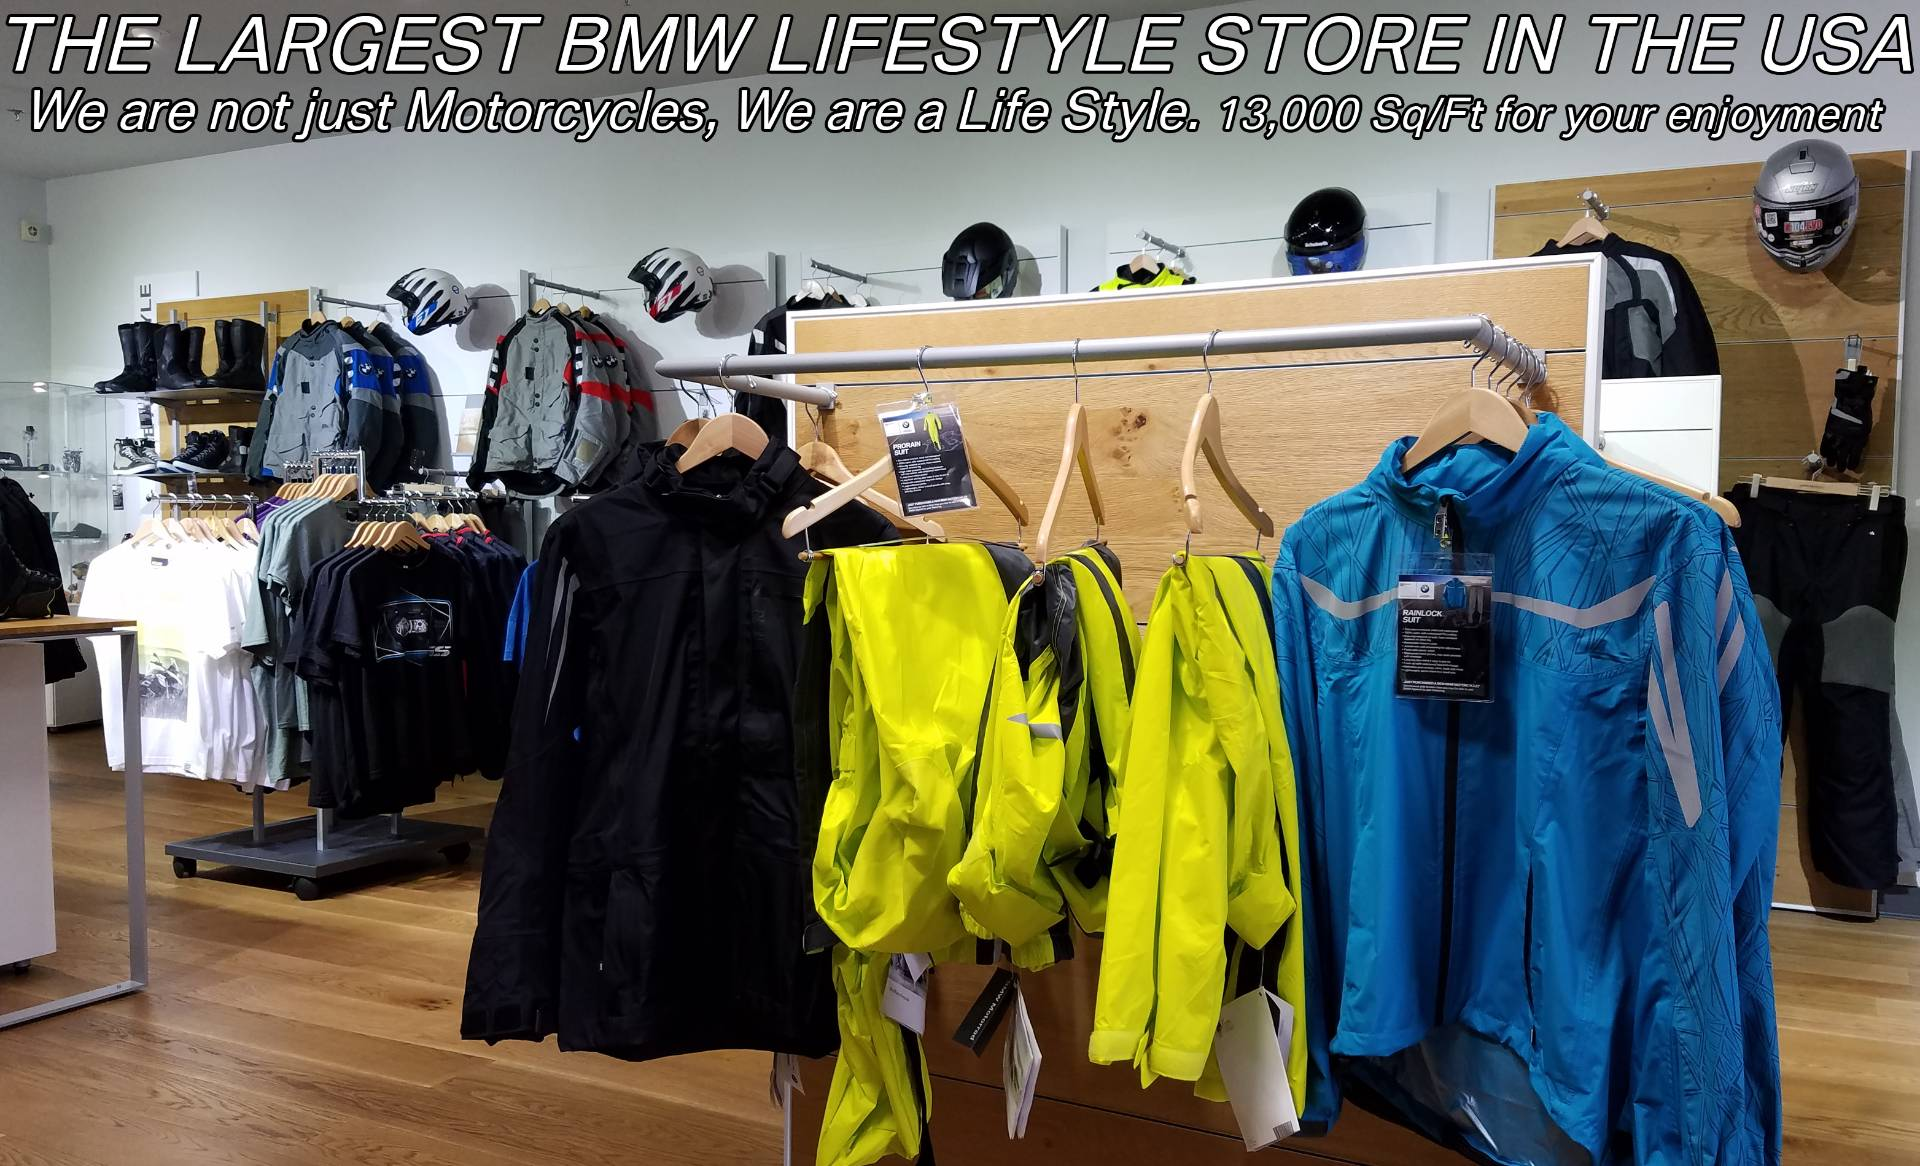 New 2019 BMW R 1250 GS for sale, New BMW for sale R 1250GS, New BMW Motorcycle R1250GS for sale, new BMW 1250GS, R1250GS, GS. BMW Motorcycles of Miami, Motorcycles of Miami, Motorcycles Miami, New Motorcycles, Used Motorcycles, pre-owned. #BMWMotorcyclesOfMiami #MotorcyclesOfMiami. - Photo 57